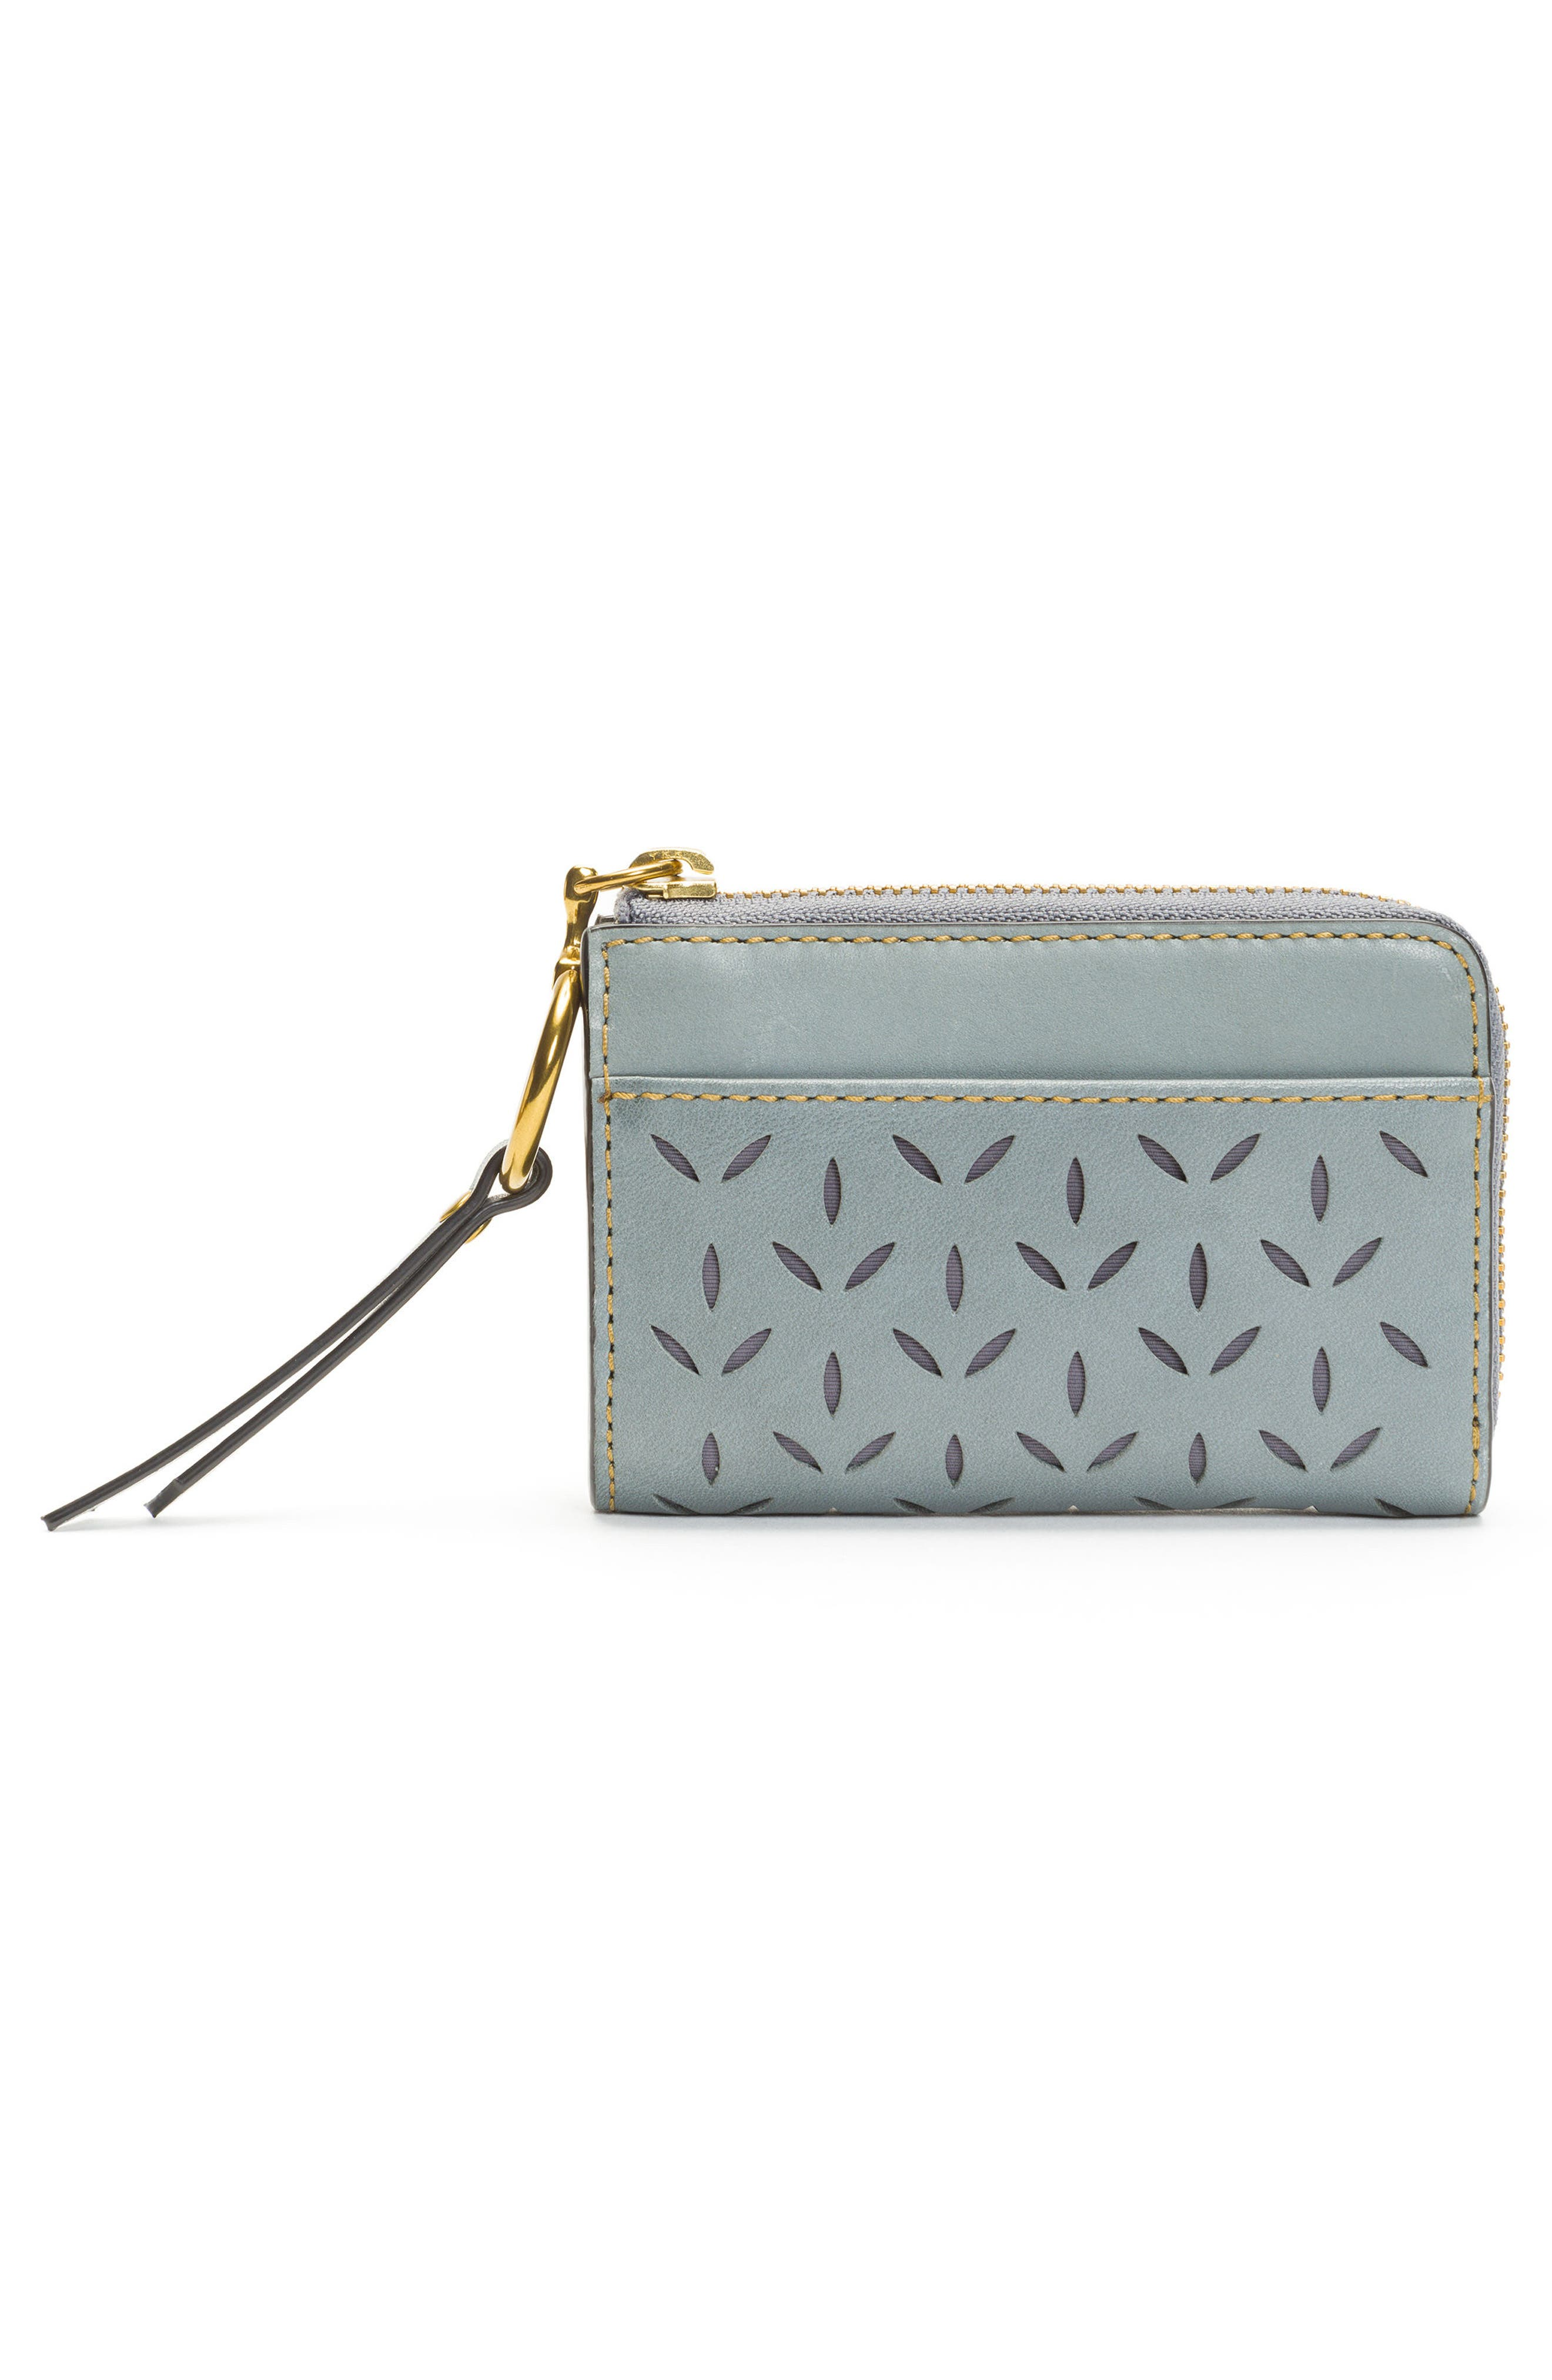 Ilana Small Perforated Leather Zip Wallet,                             Alternate thumbnail 10, color,